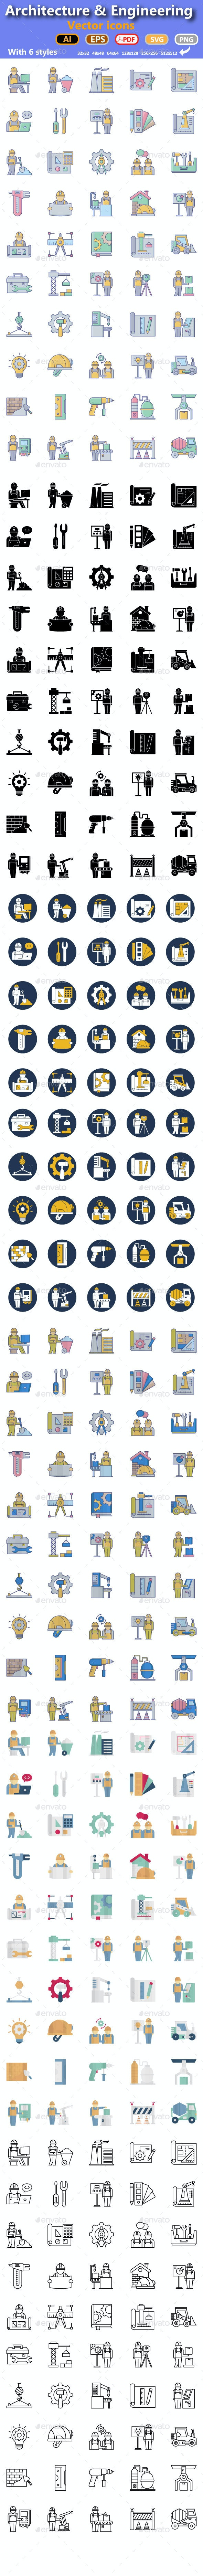 300 Architecture & engineering Vector Icons Set - Icons